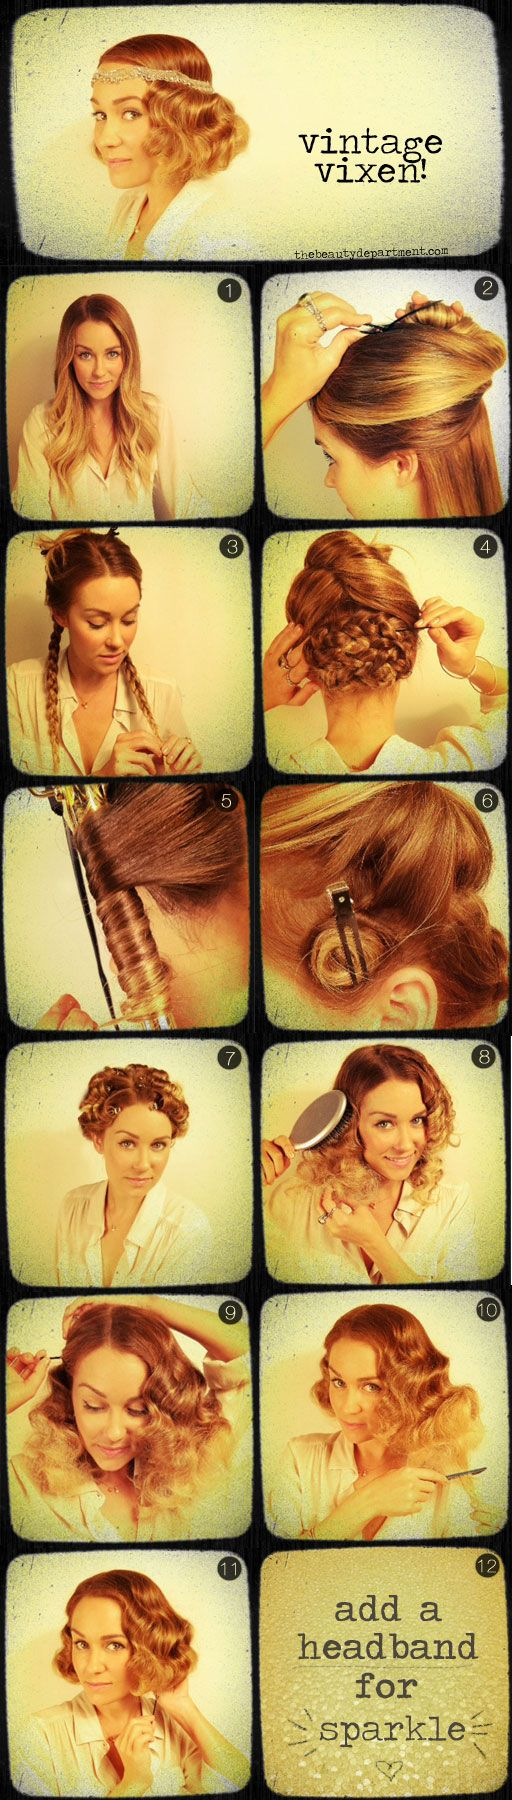 Cute Hair Do's :) Lauren Conrad has amazing hair don't you think?